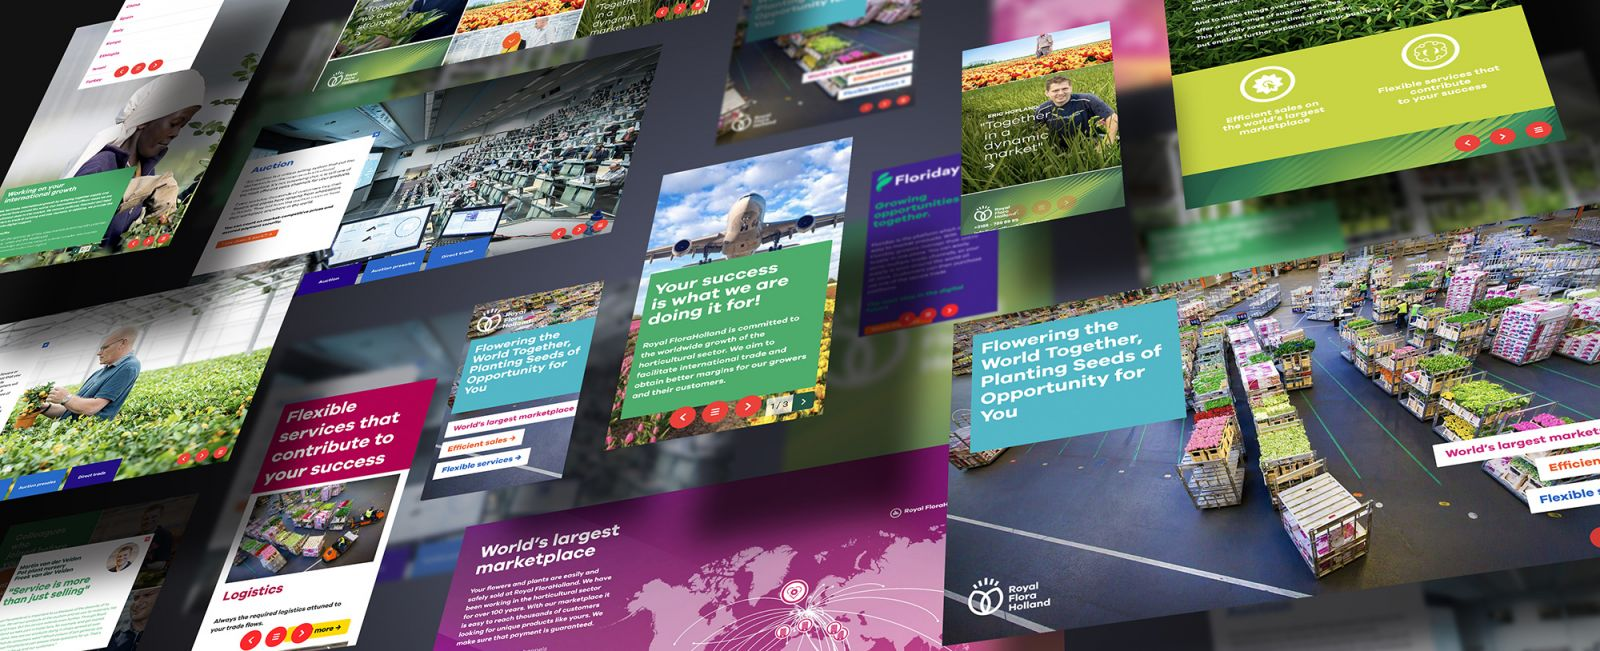 Royal FloraHolland interactive sales brochure